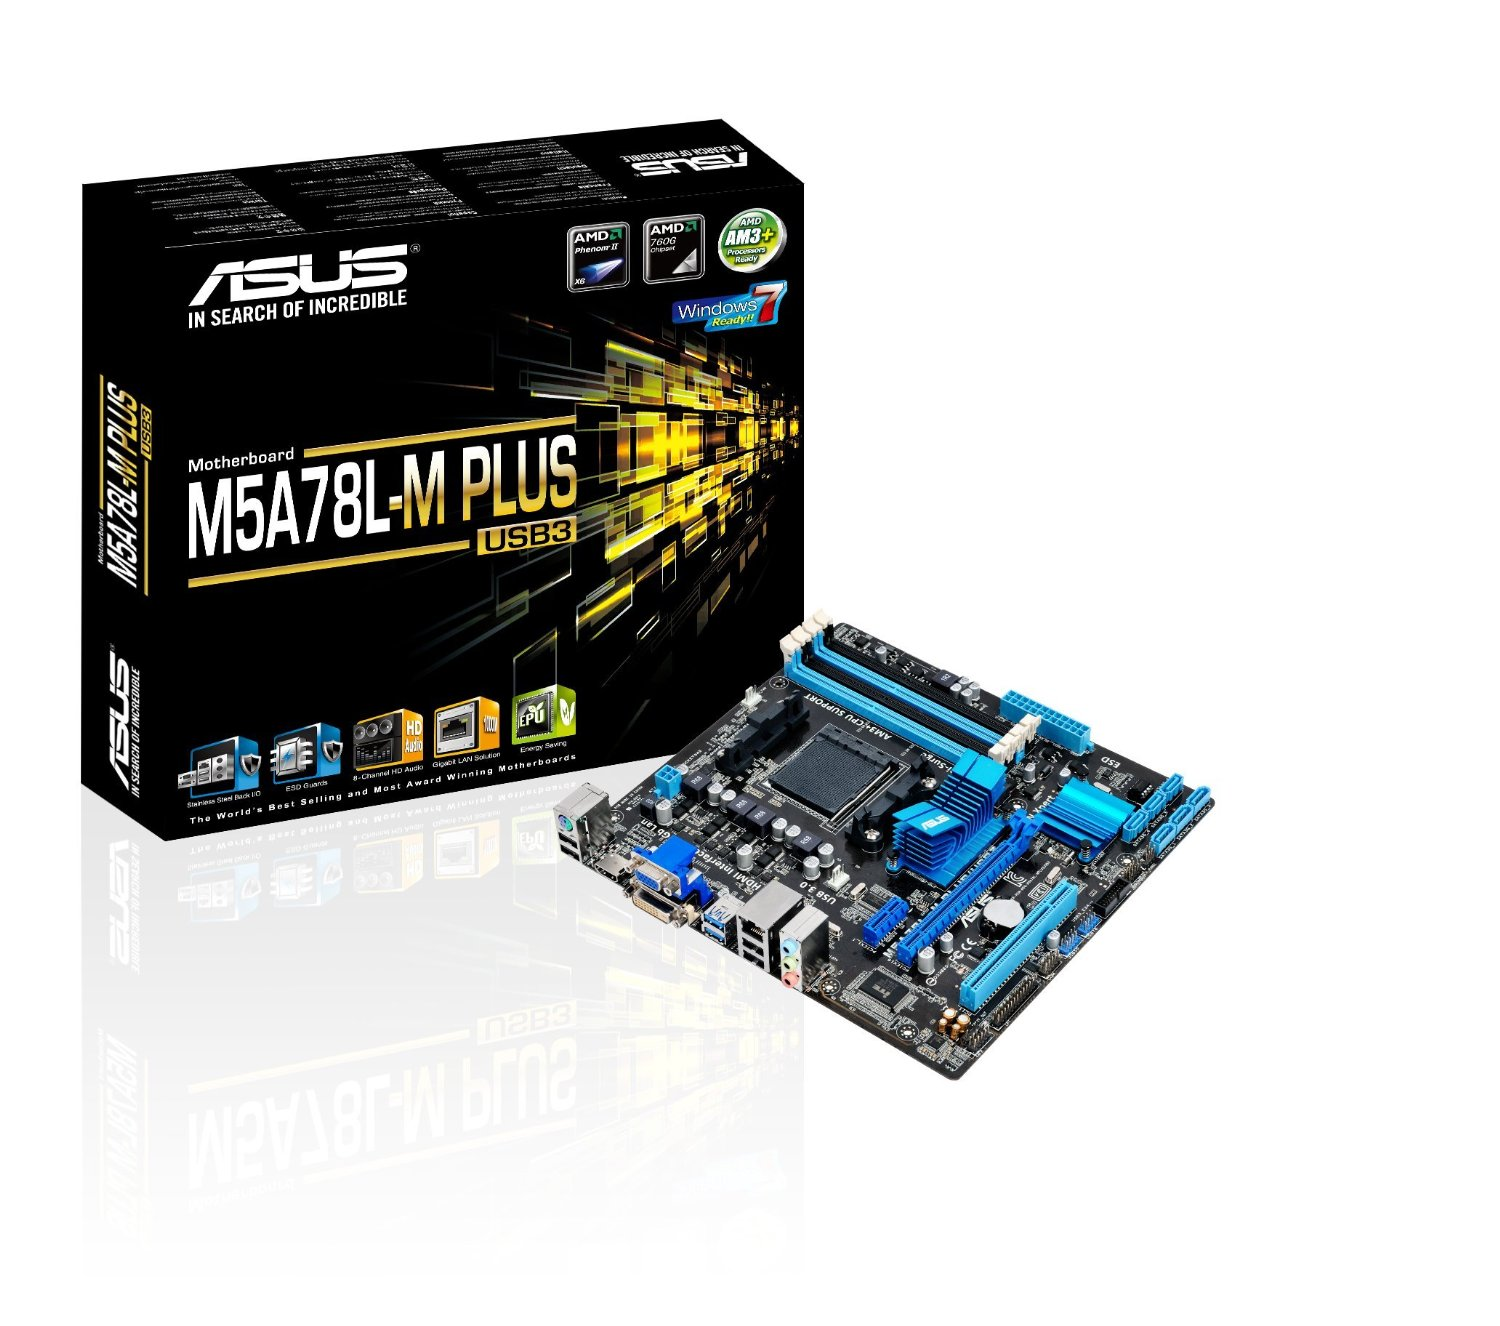 asus m5a78l m plus usb3 am3 ddr3 hdmi 760g microatx motherboard 97 asus m5a78l m plus usb3 am3 ddr3 hdmi 760g microatx motherboard  at bakdesigns.co